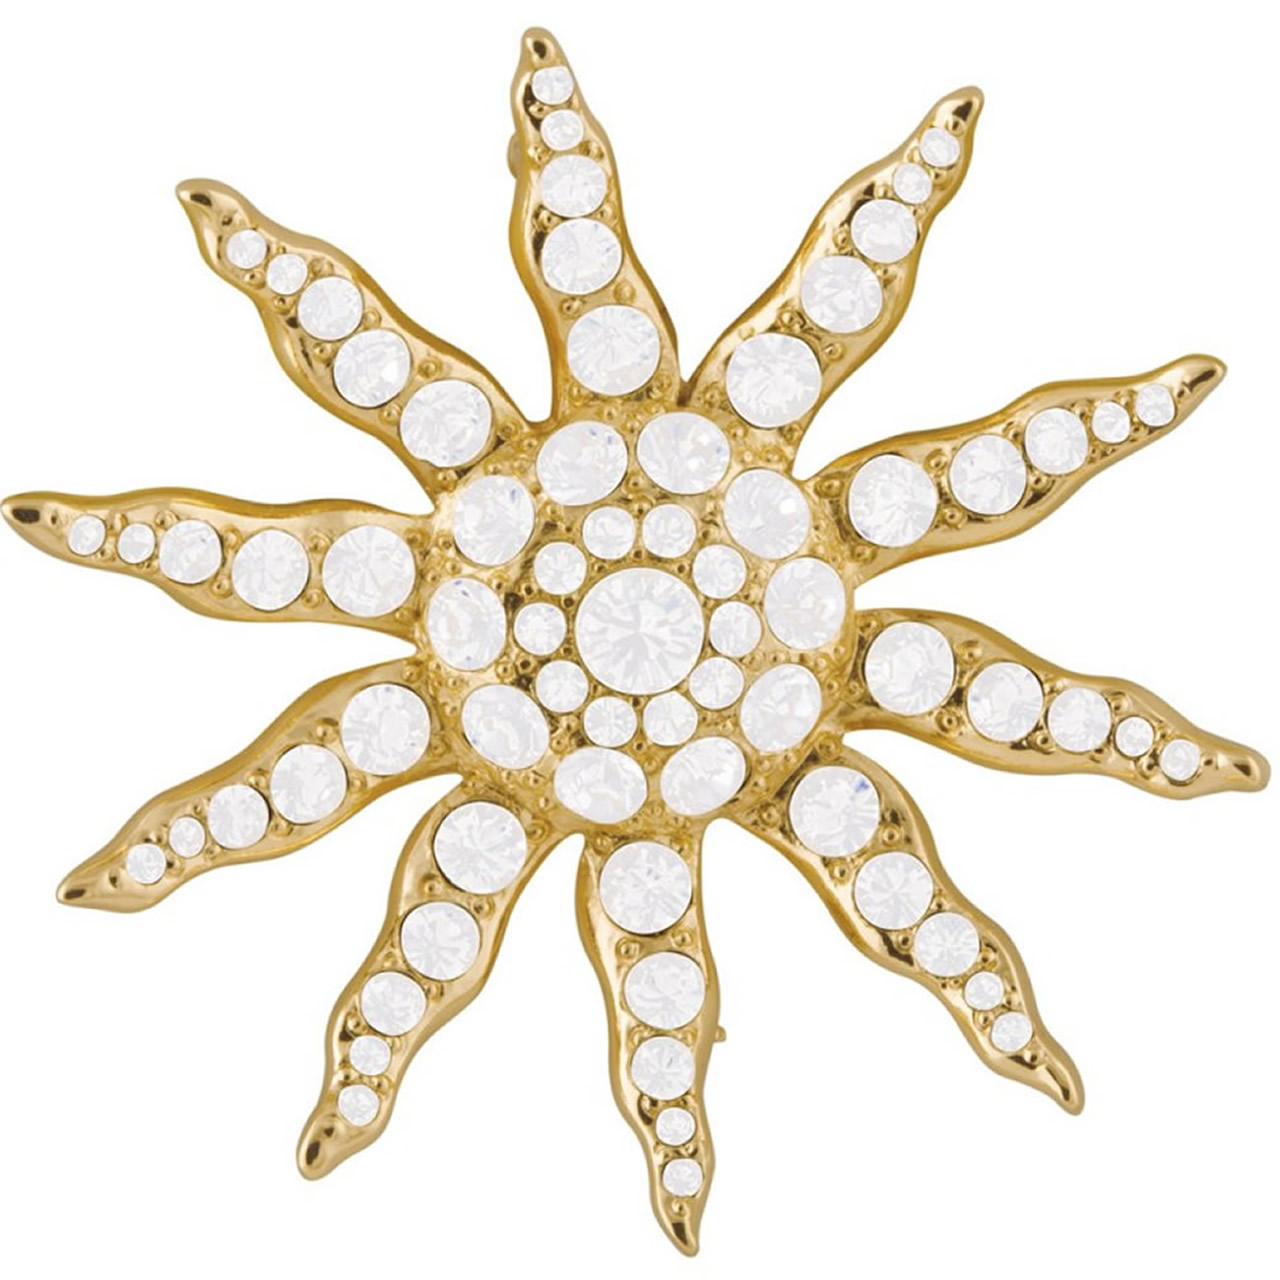 Gold Plated Victorian Sun Brooch With Silver Austrian Crystals